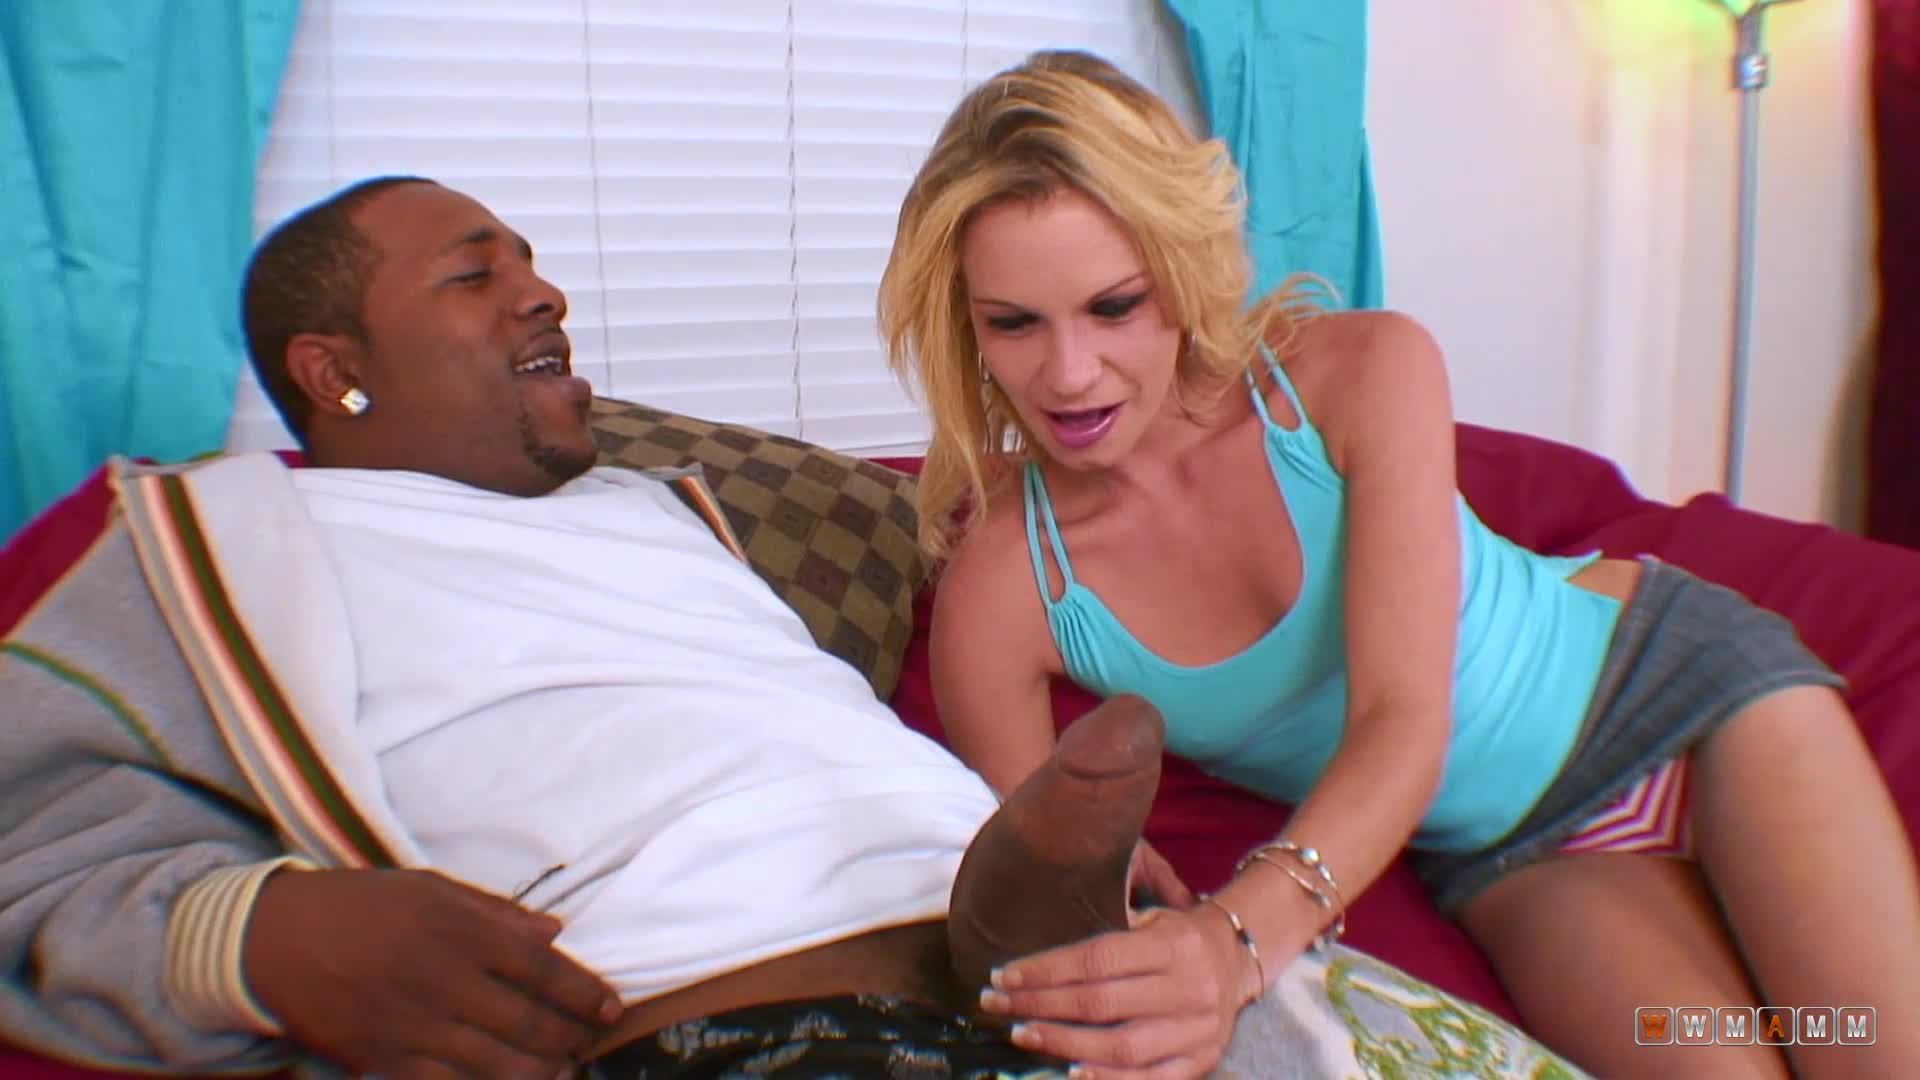 April Was Impressed By The Huge Dick Of Her Brothers Coach